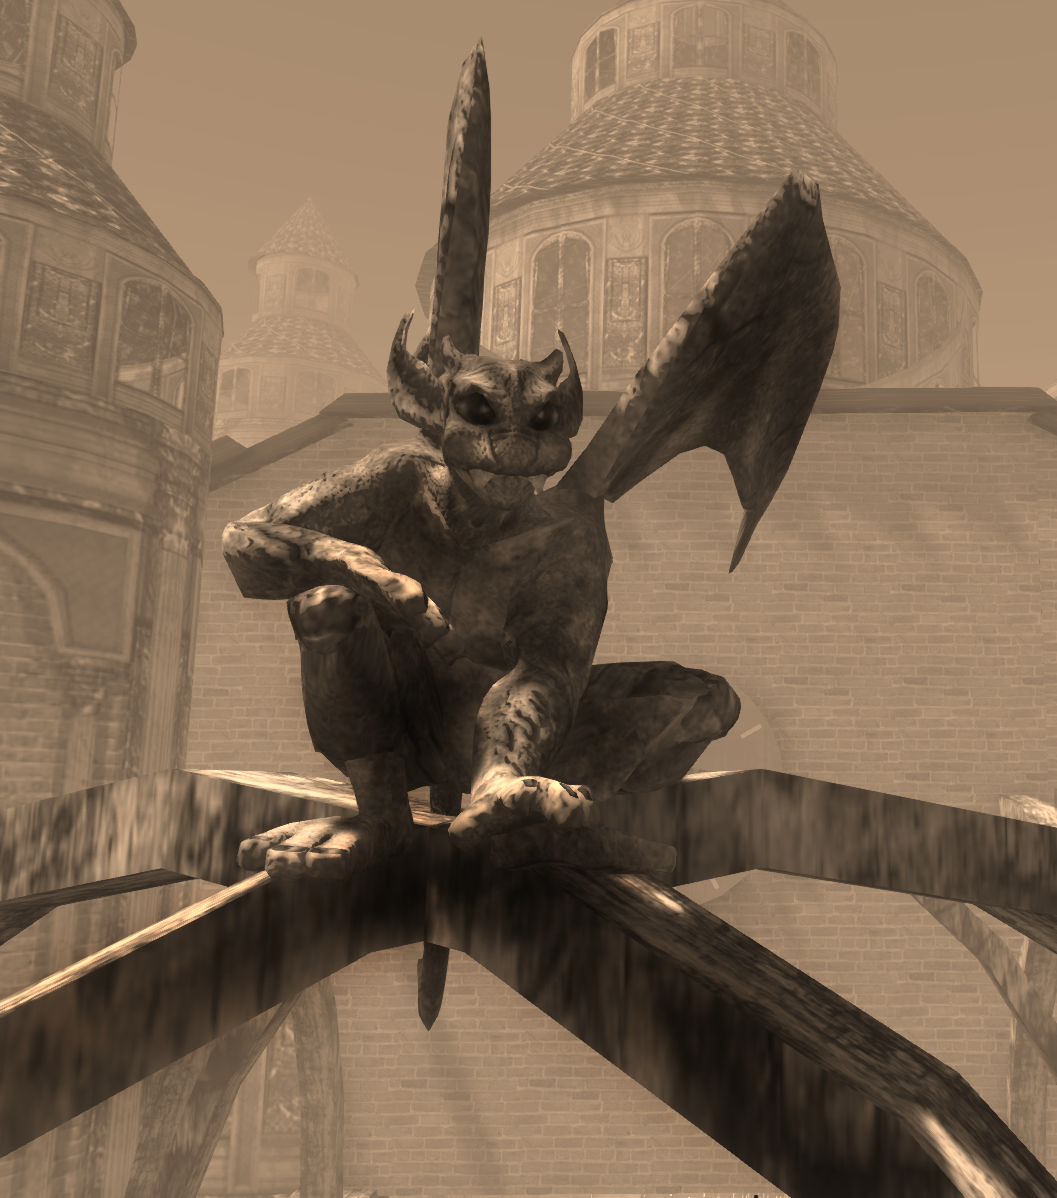 Avatar Bizarre Gargoyle Avatar Posing on Cathedral